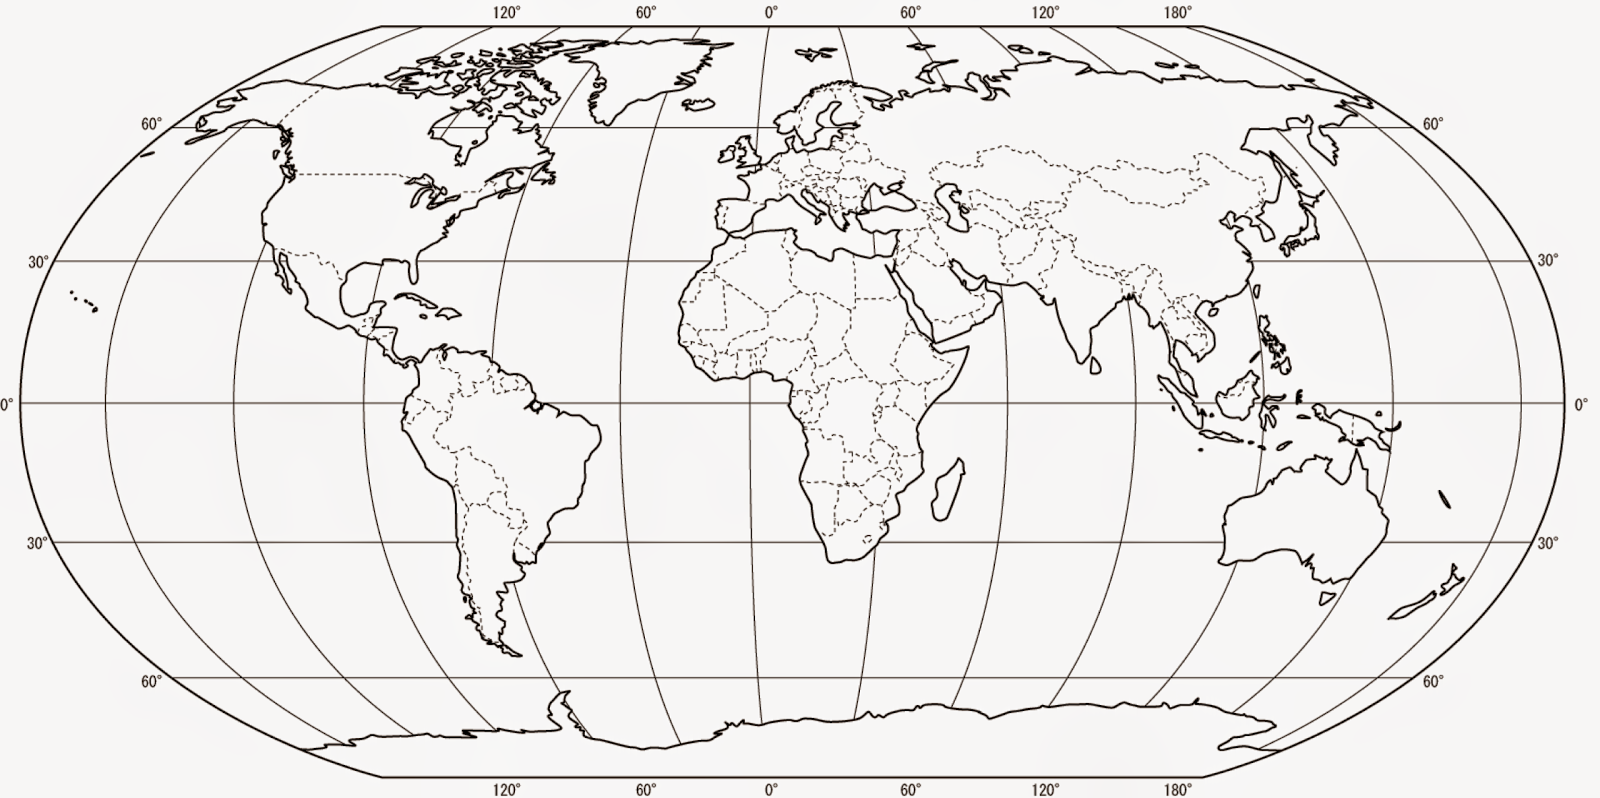 Greig Roselli Blank World Map For Printing With Borders